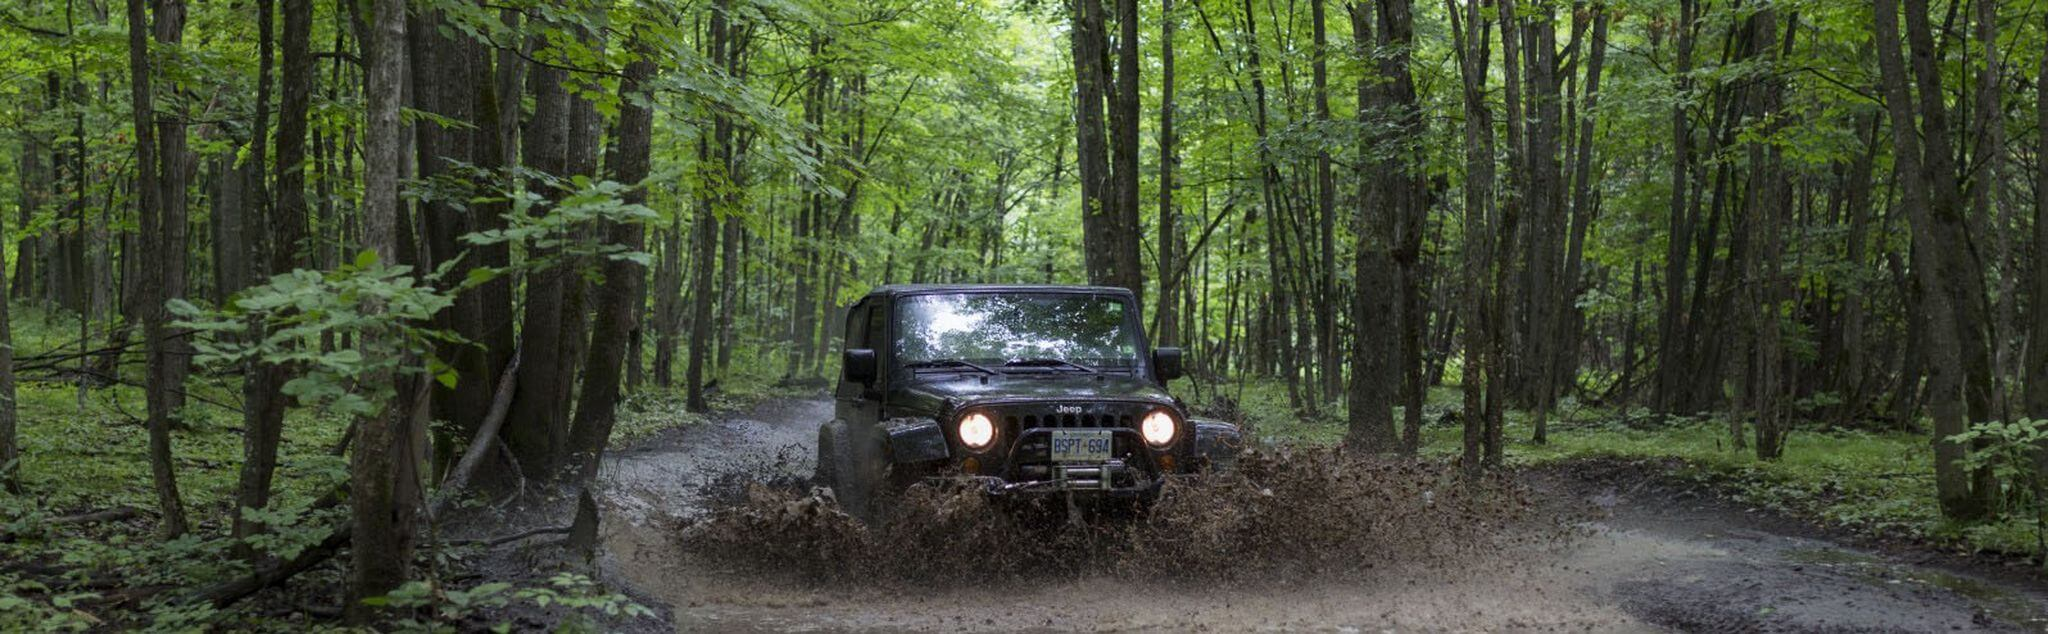 4x4 Tours in Leicestershire